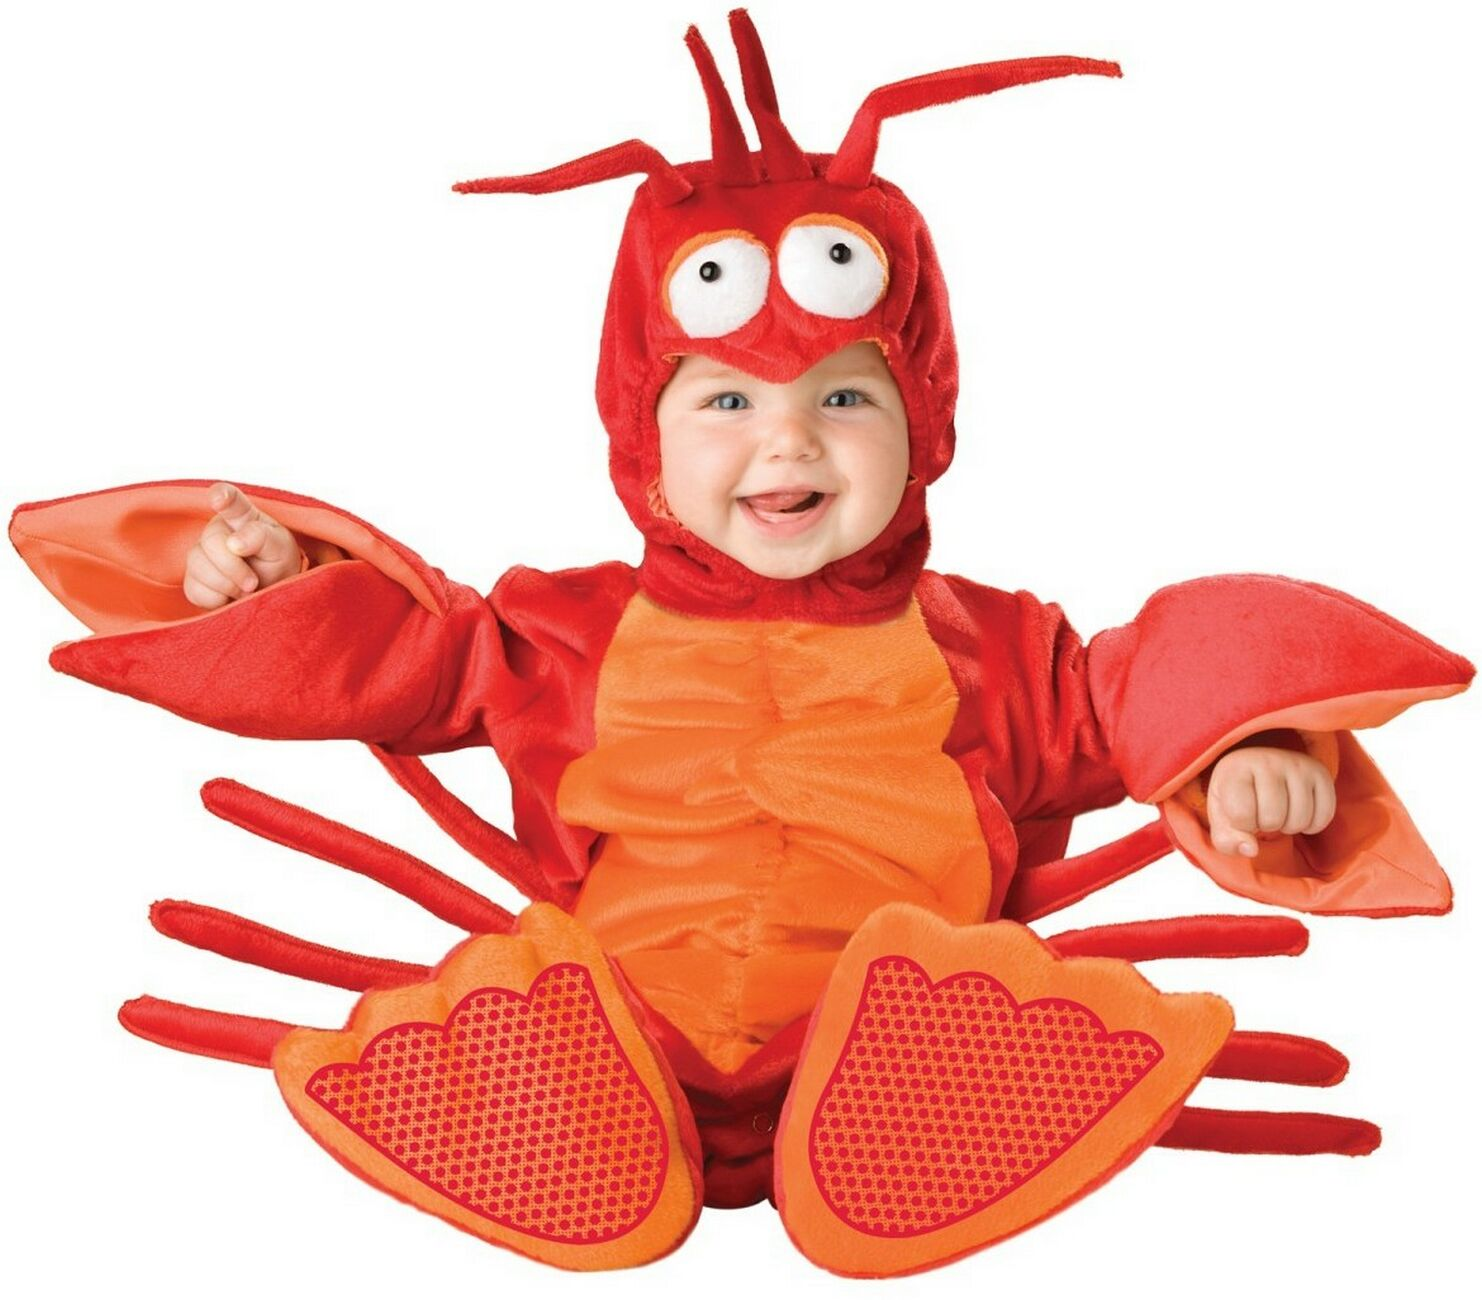 Pictured: A 60 year old lobster.